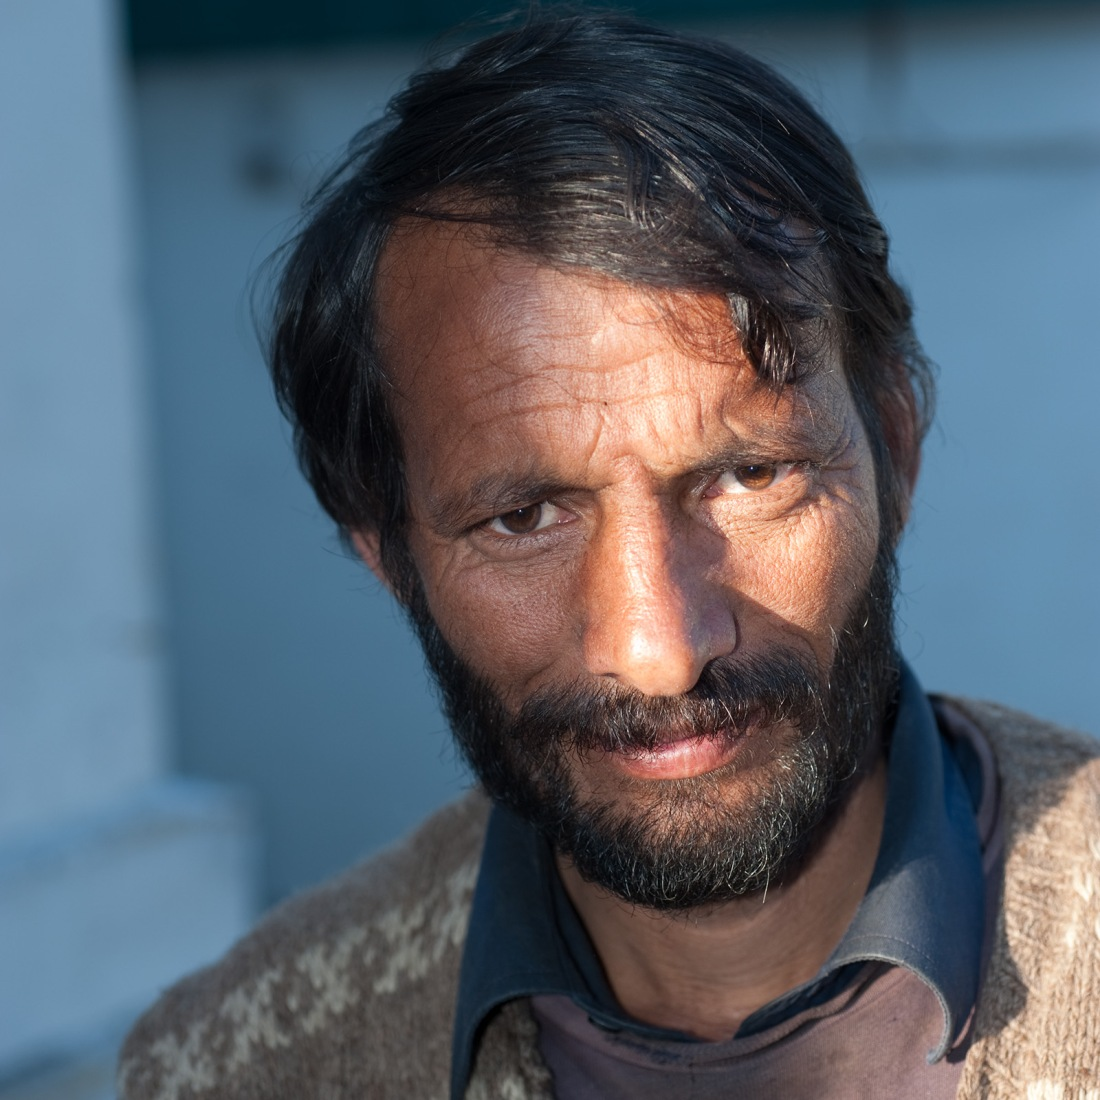 Gajmohan, one of our porters, at Ghuttu on our last day.